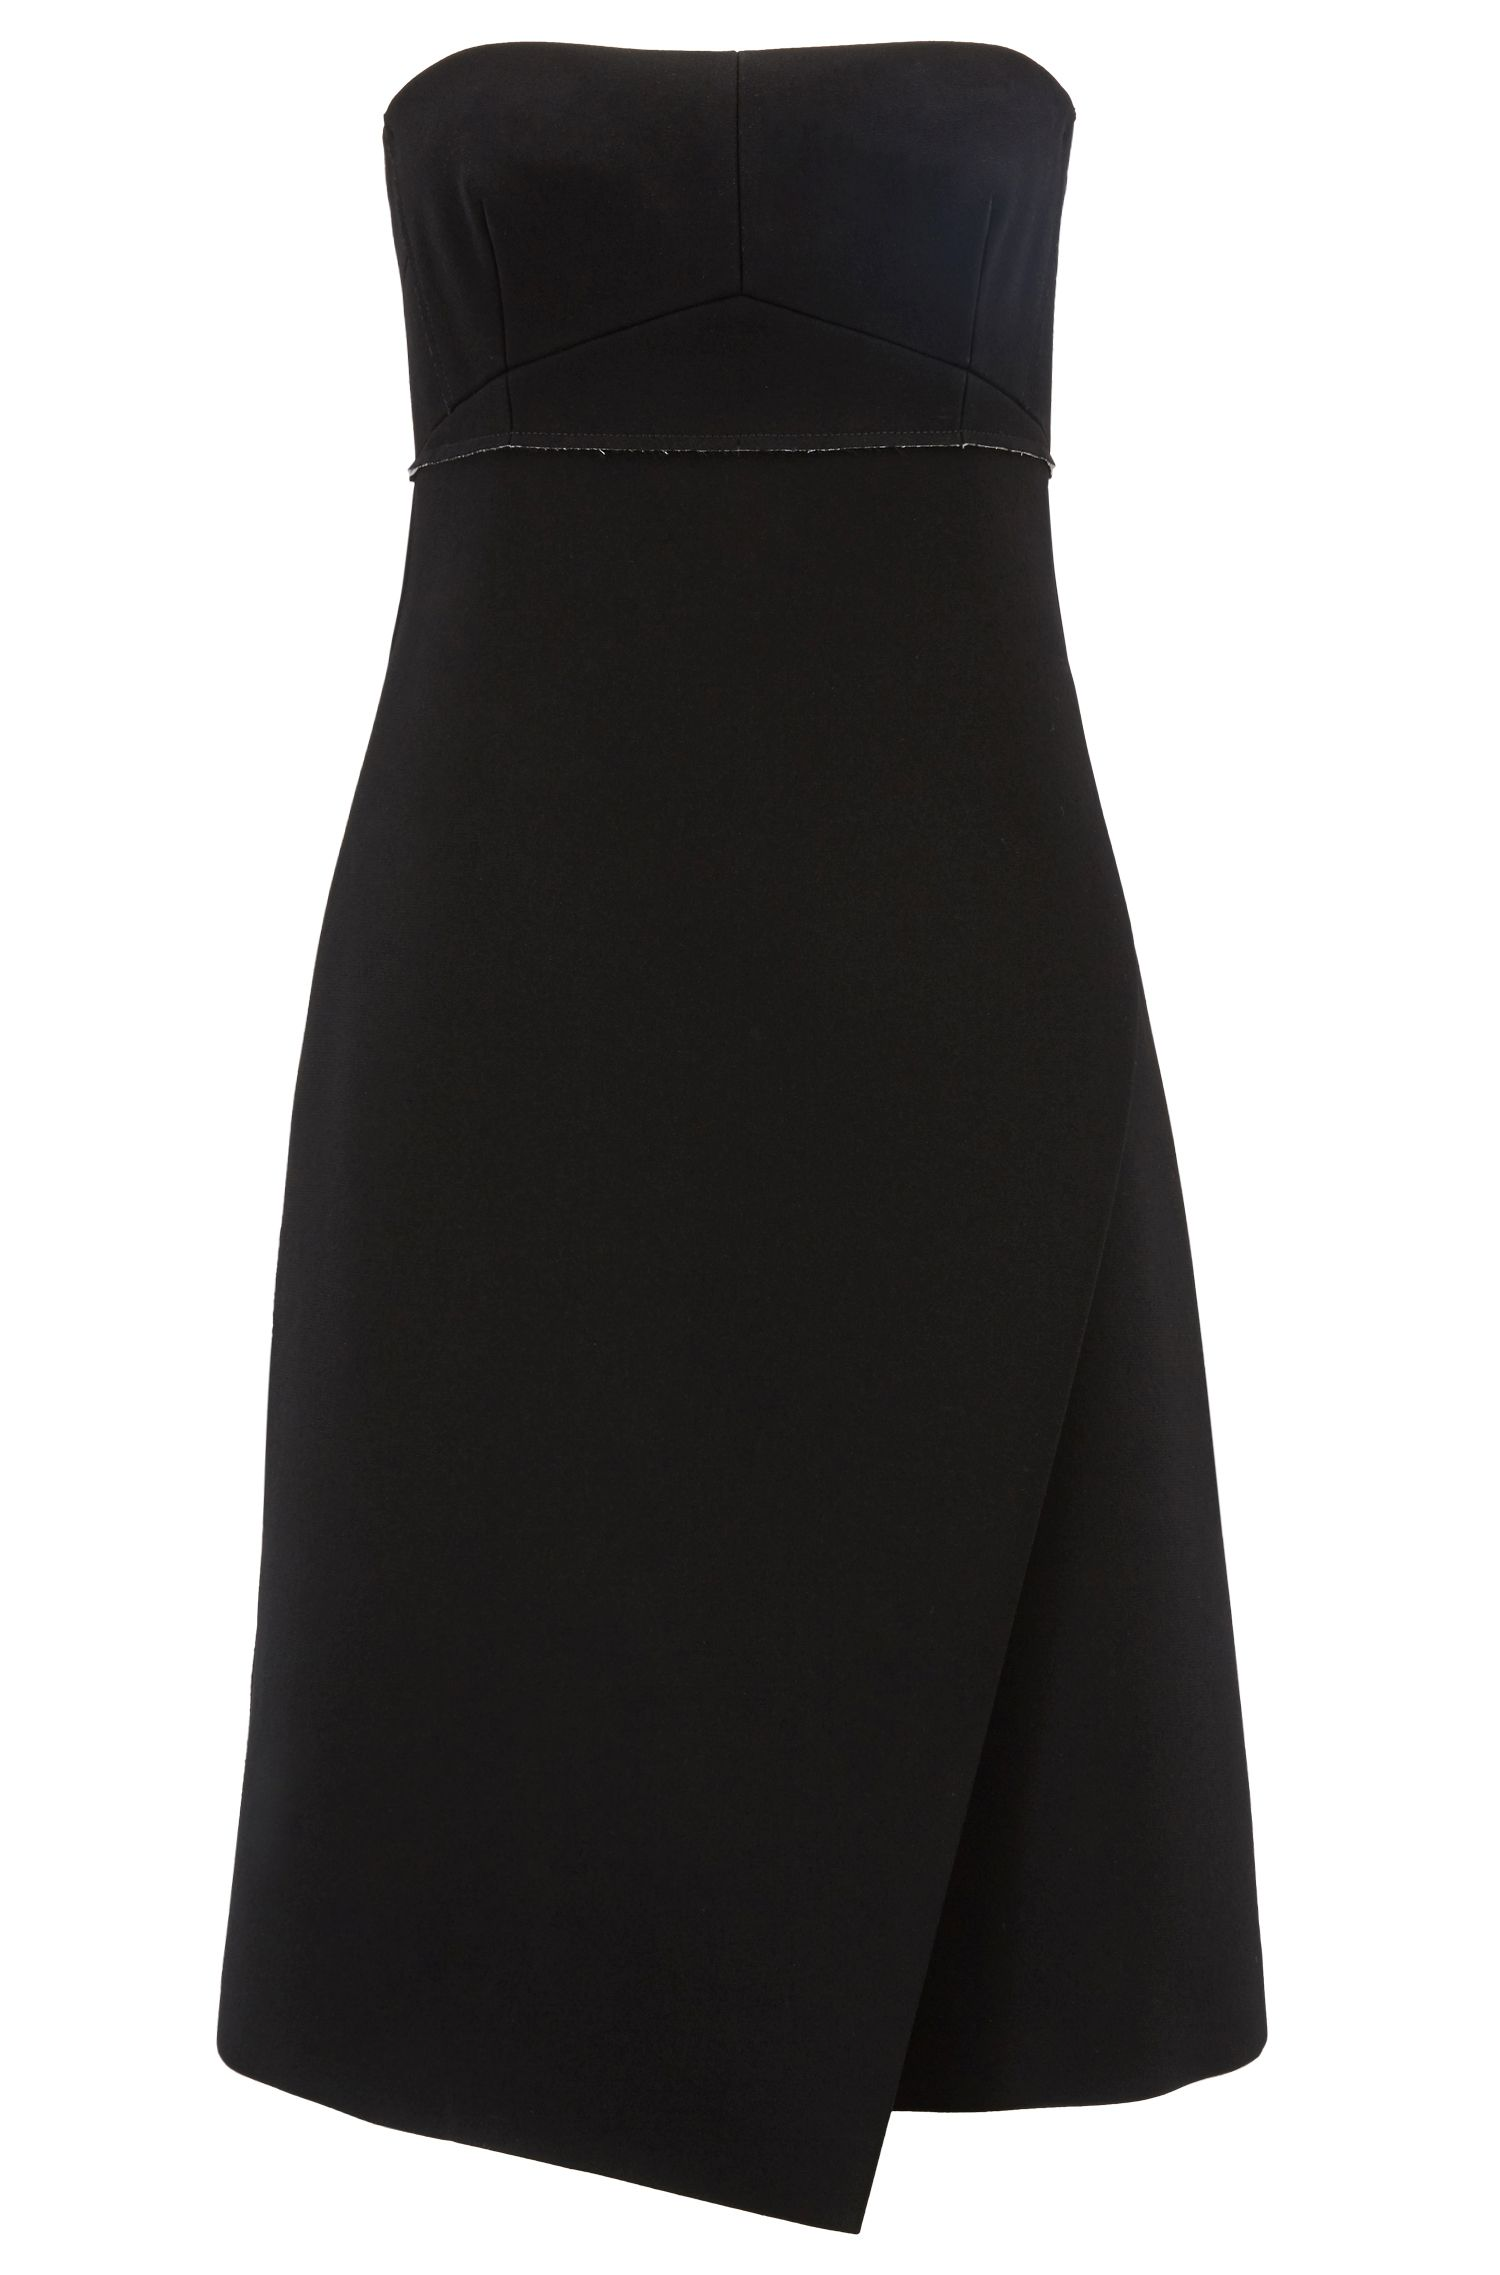 Slim-fit strapless dress in Japanese bonded crepe, Patterned